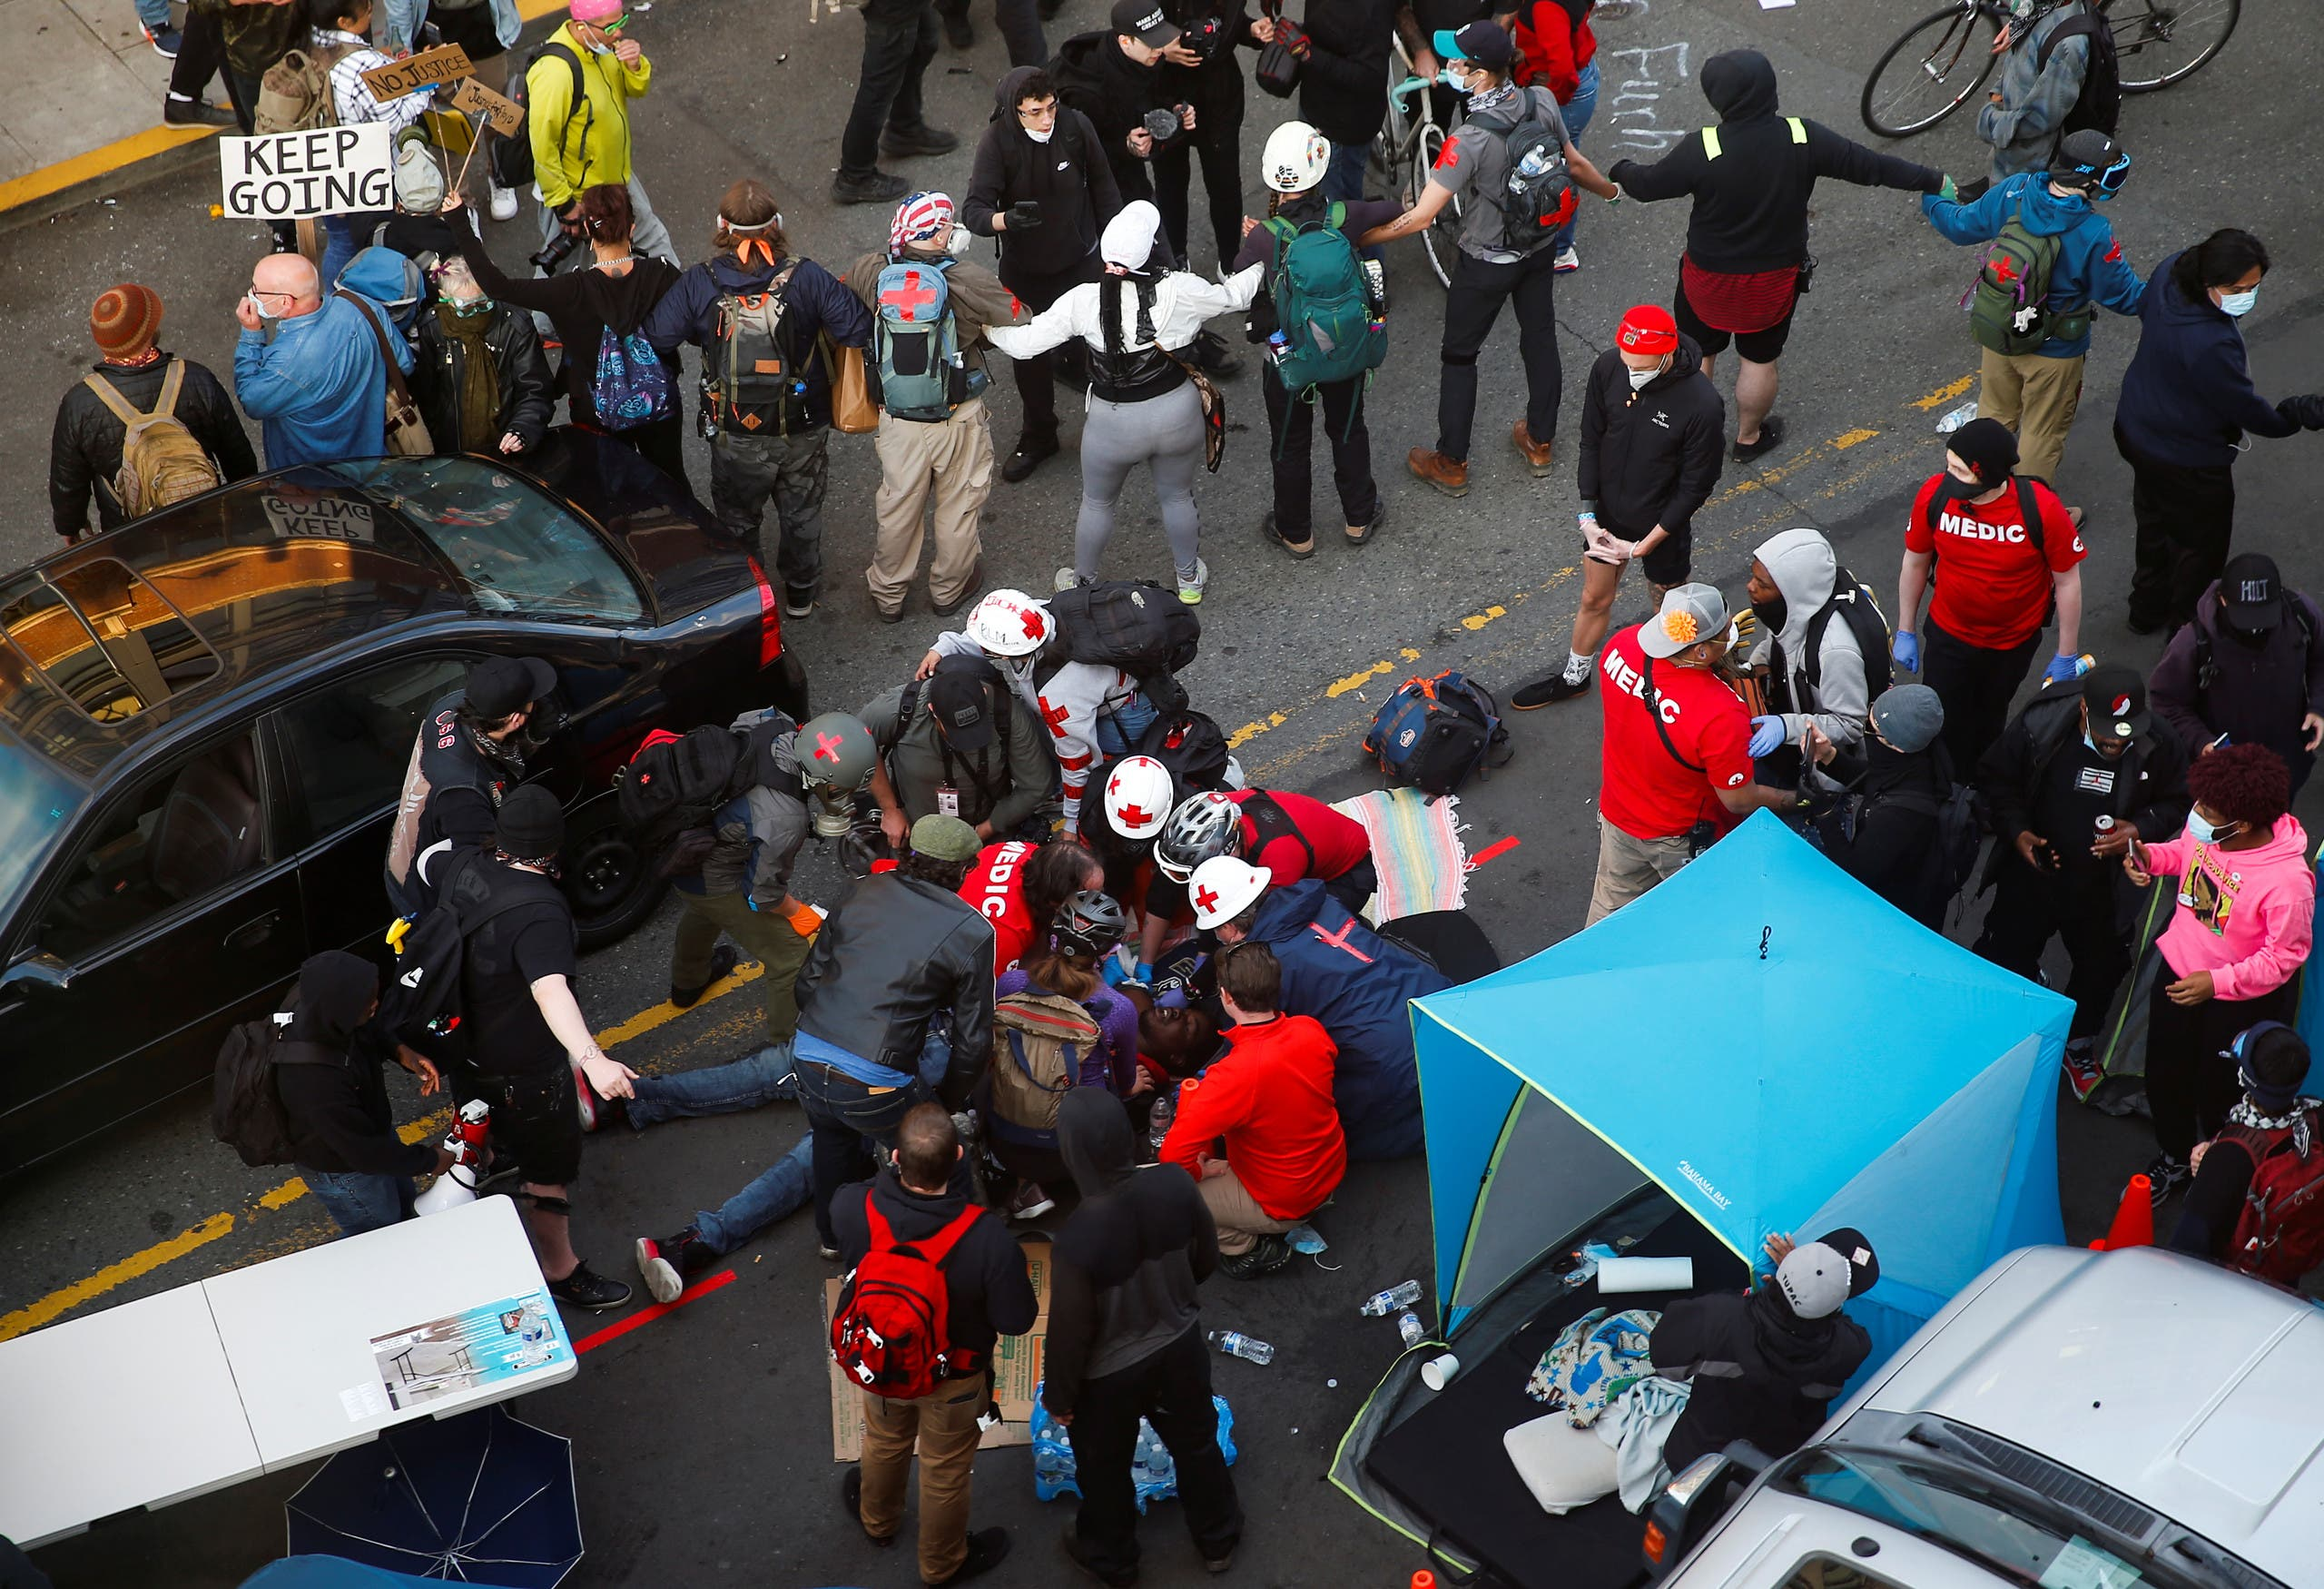 Paramedics attend to an injured person at the scene after a man drove a car into a crowd in Seattle, June 7, 2020. (Reuters)